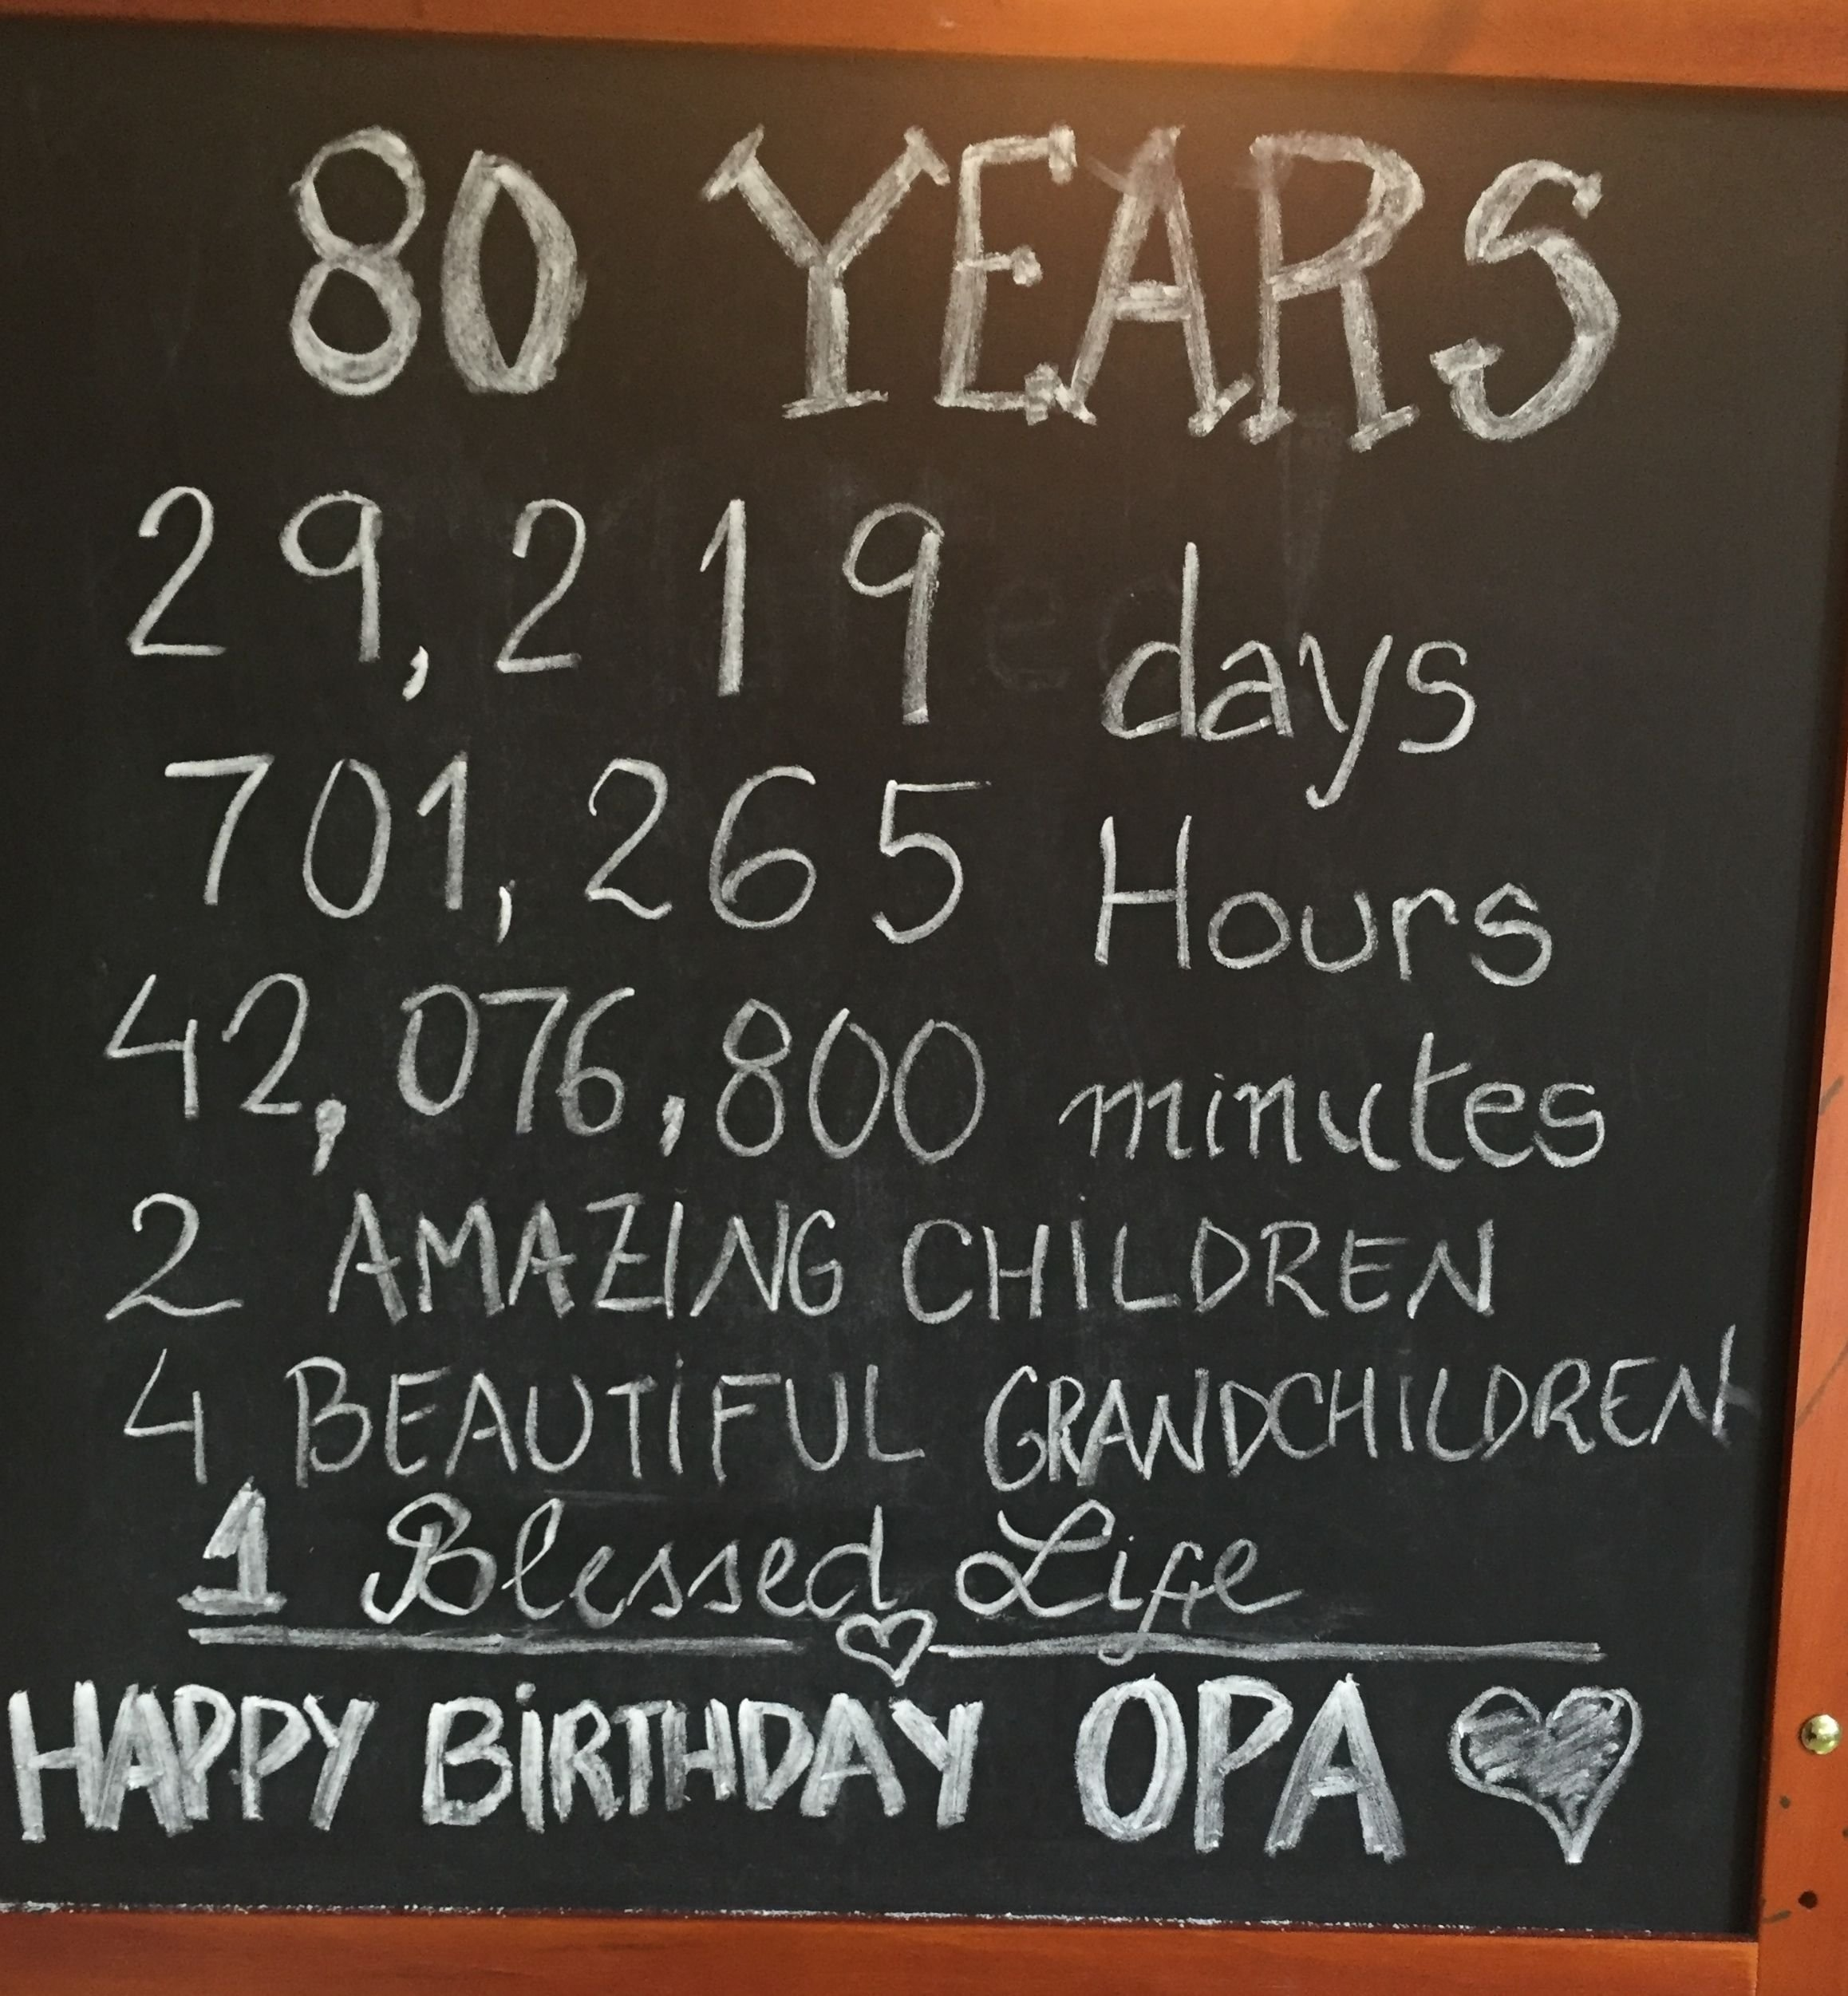 10 Nice 80Th Birthday Ideas For Dad 80th birthday ideas yuly360 impress your guests pinterest 80 2